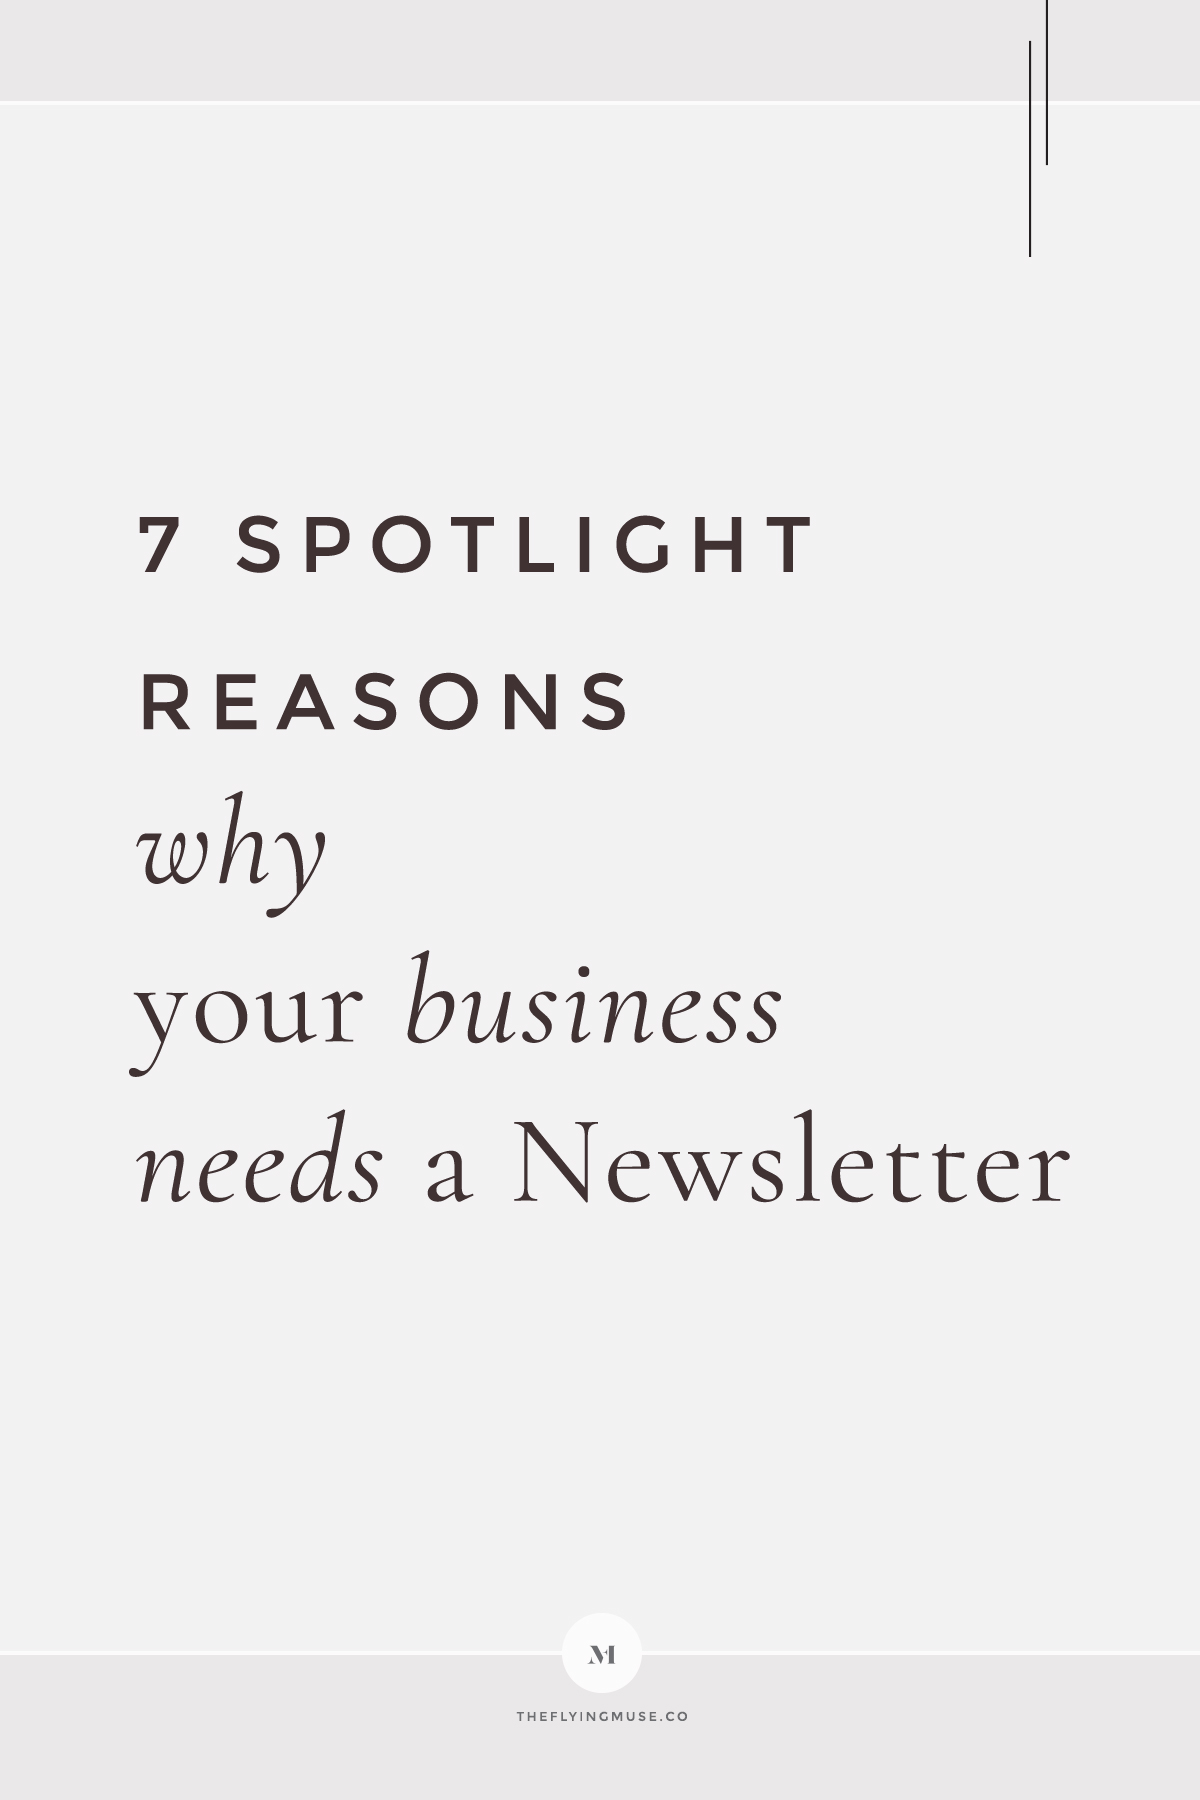 Spotlight Reasons Why Your Business Needs a Newsletter